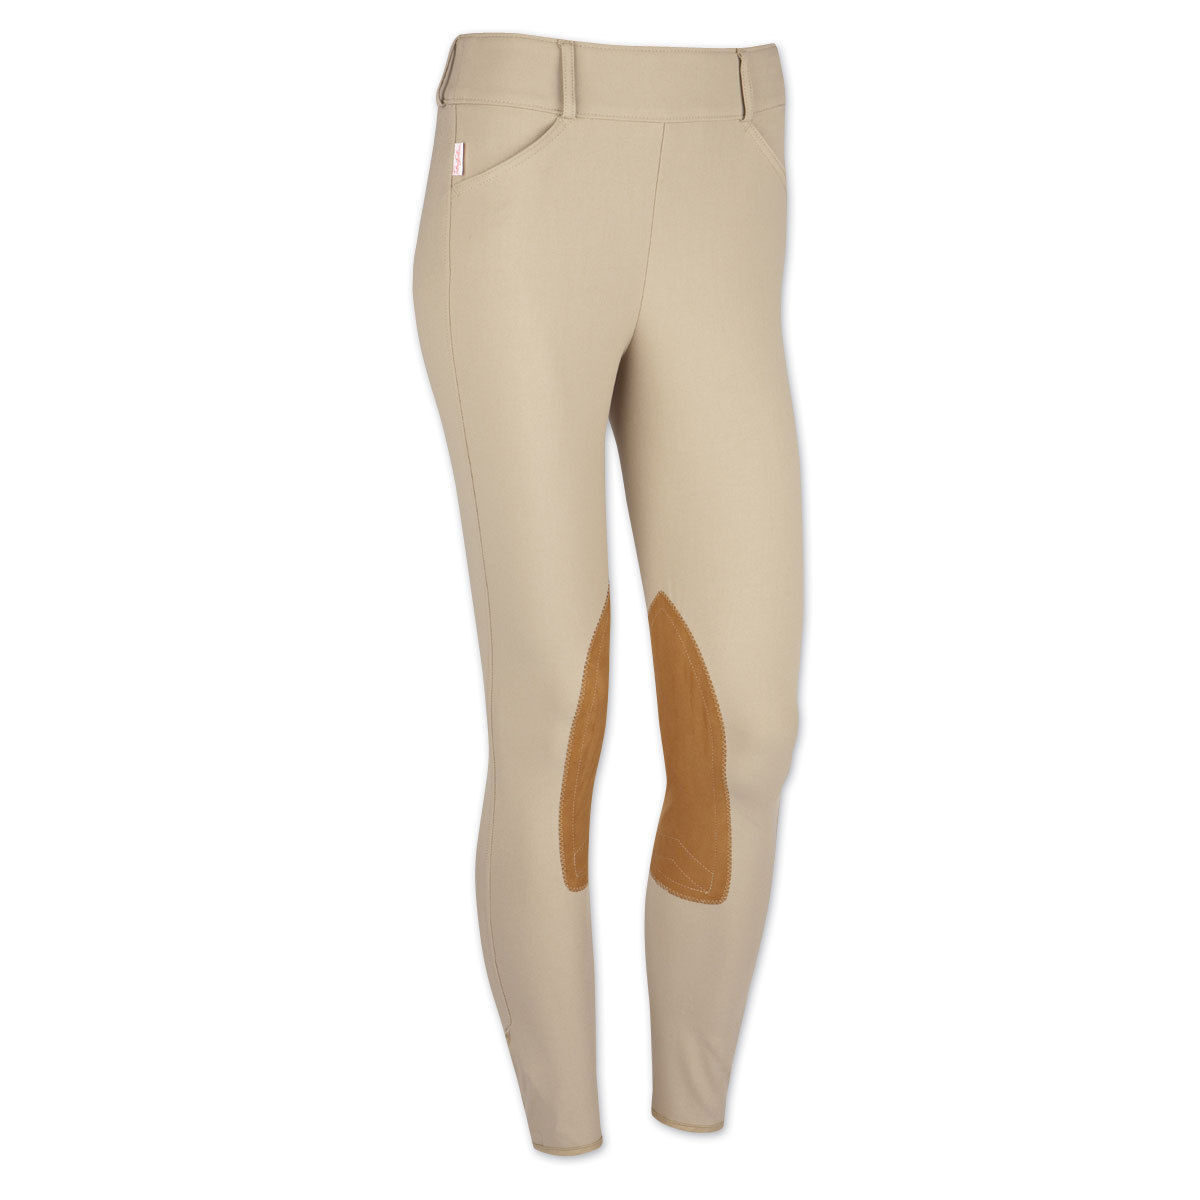 New Tailored Sportsman Trophy Hunter Breeches- 1968- LR SZ - Tan- Various Sizes